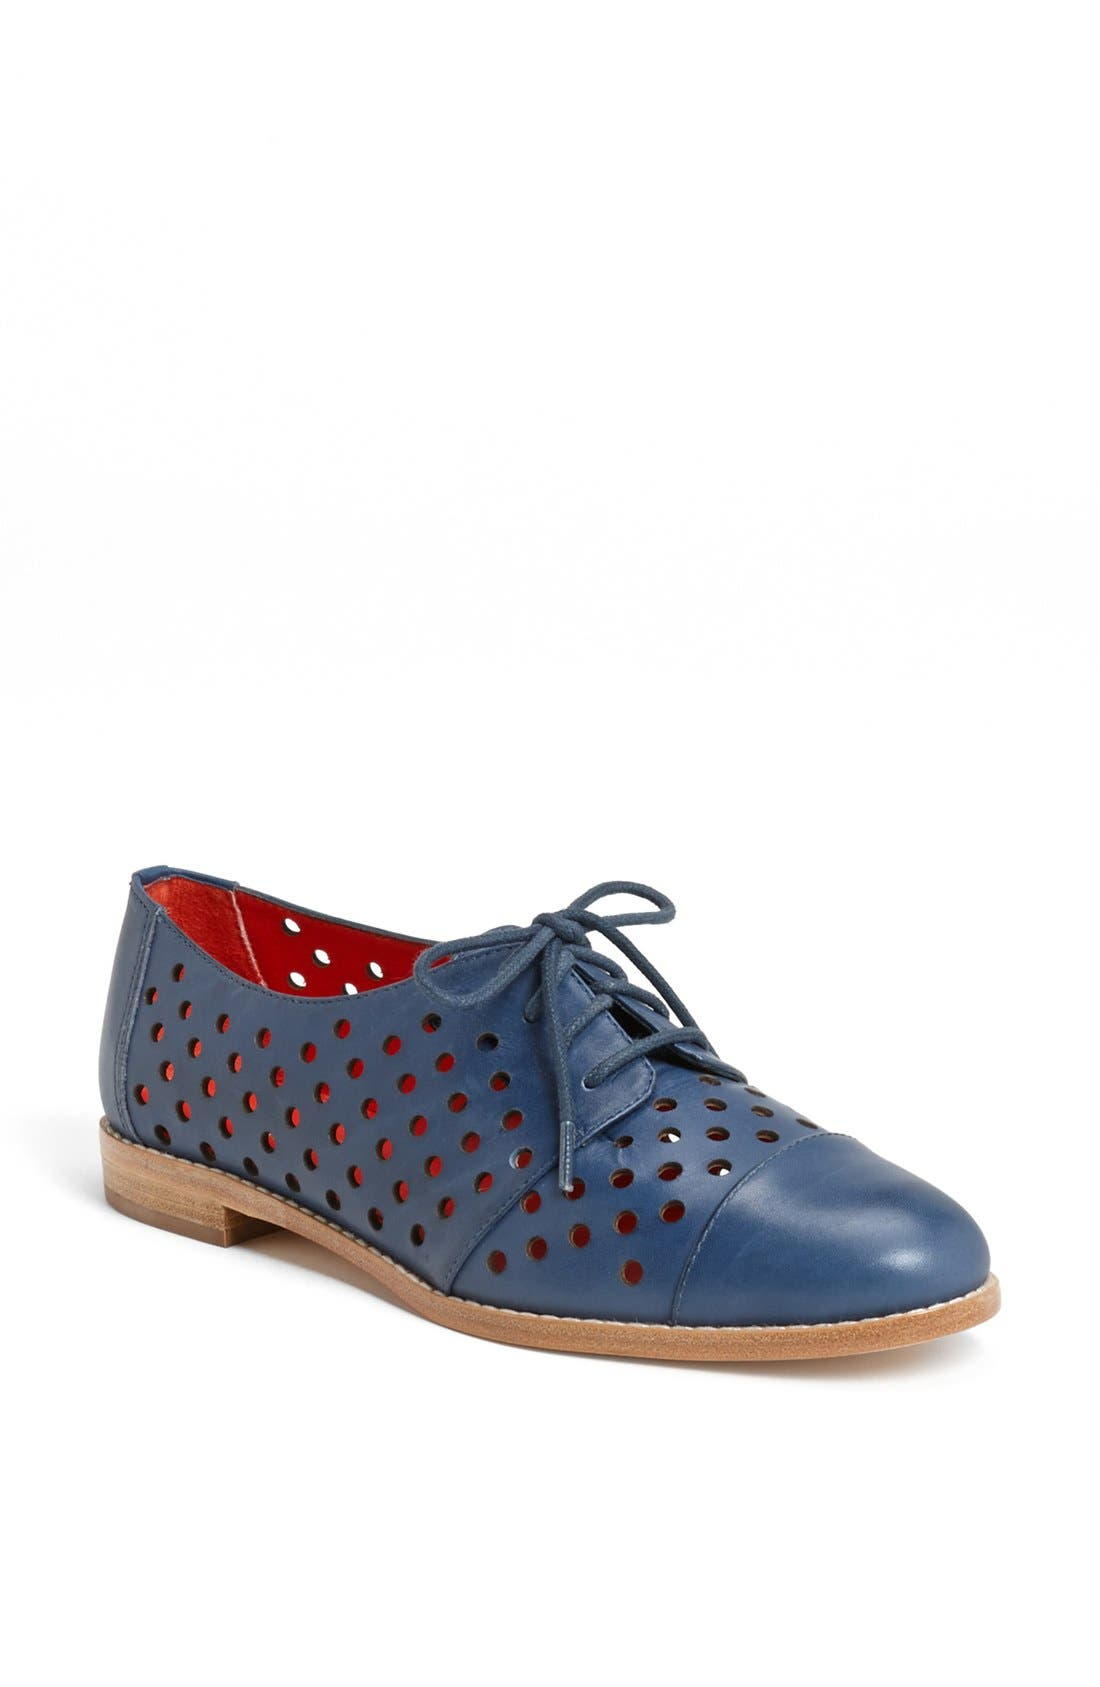 Alternate Image 1 Selected - kate spade new york 'peekaboo' leather oxford